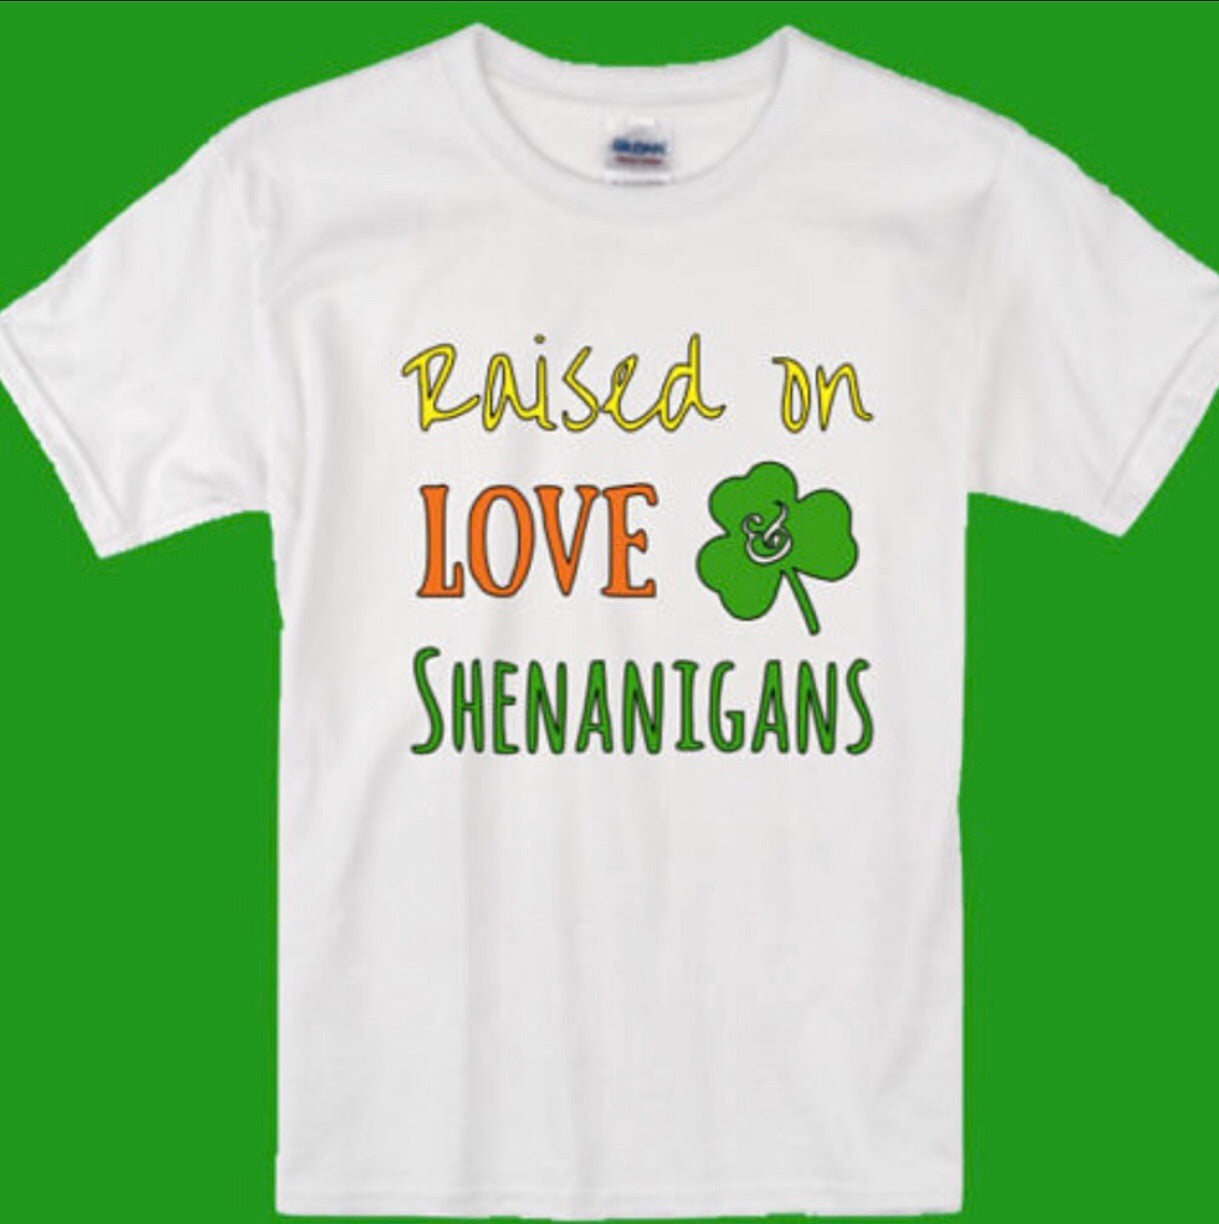 Raised on Love & Shenanigans Toddler Tee